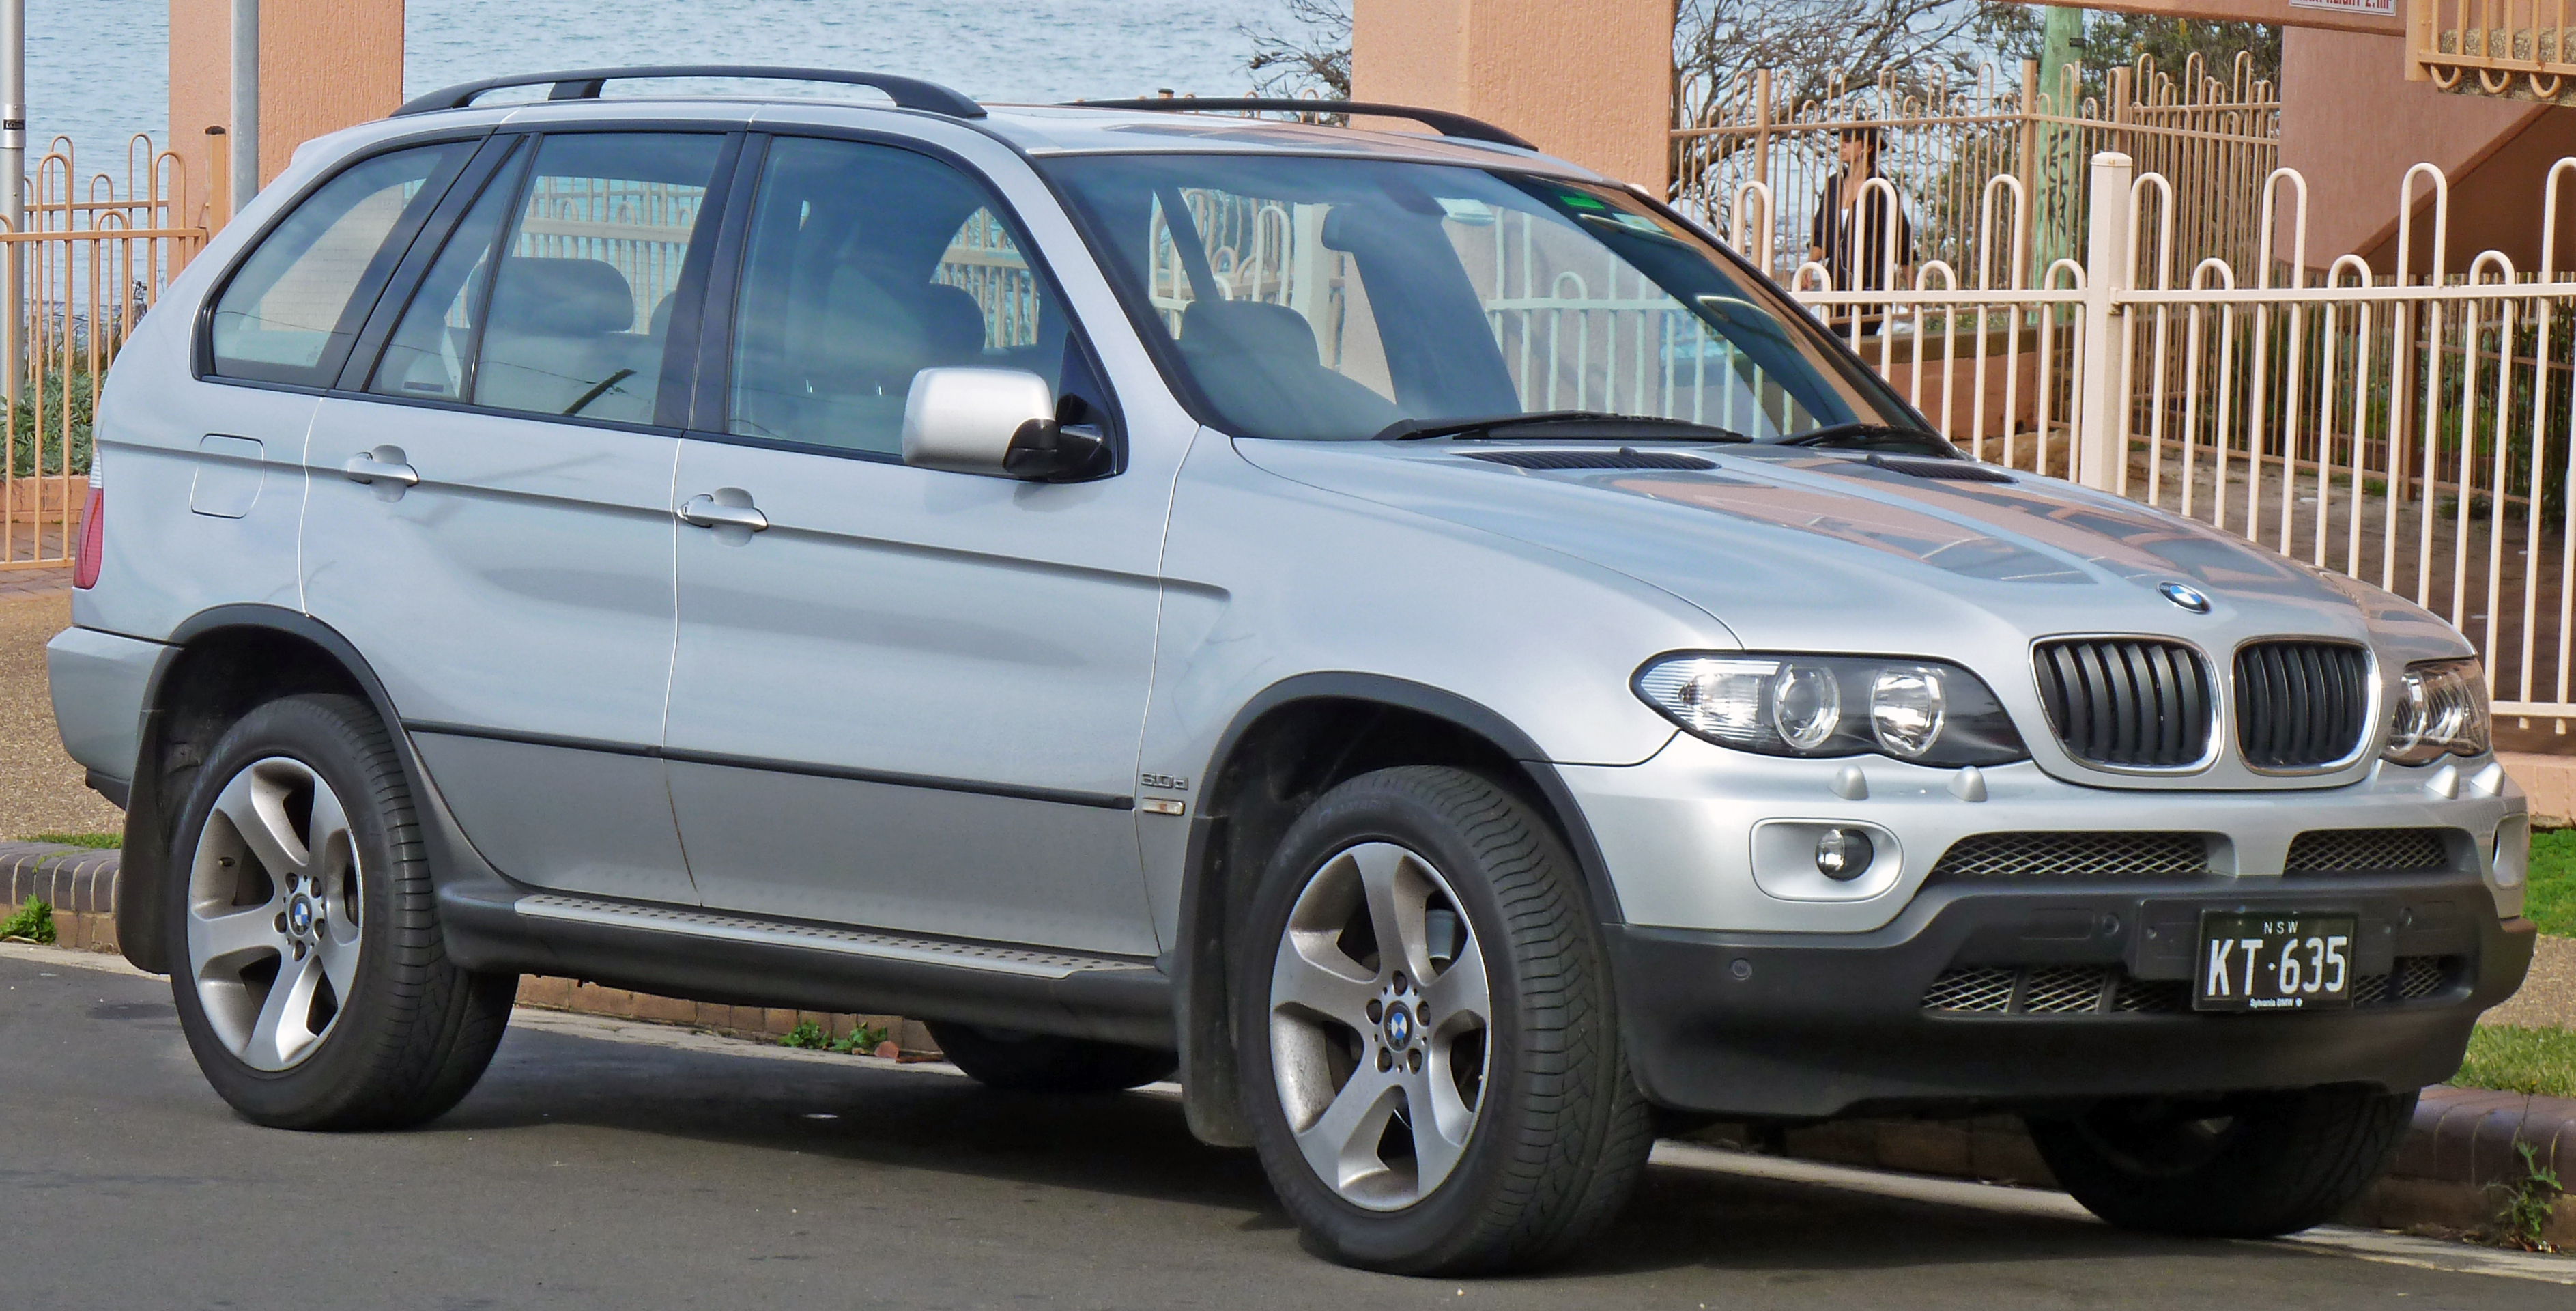 BMW X5 I (E53) 1999 - 2003 SUV 5 door #3